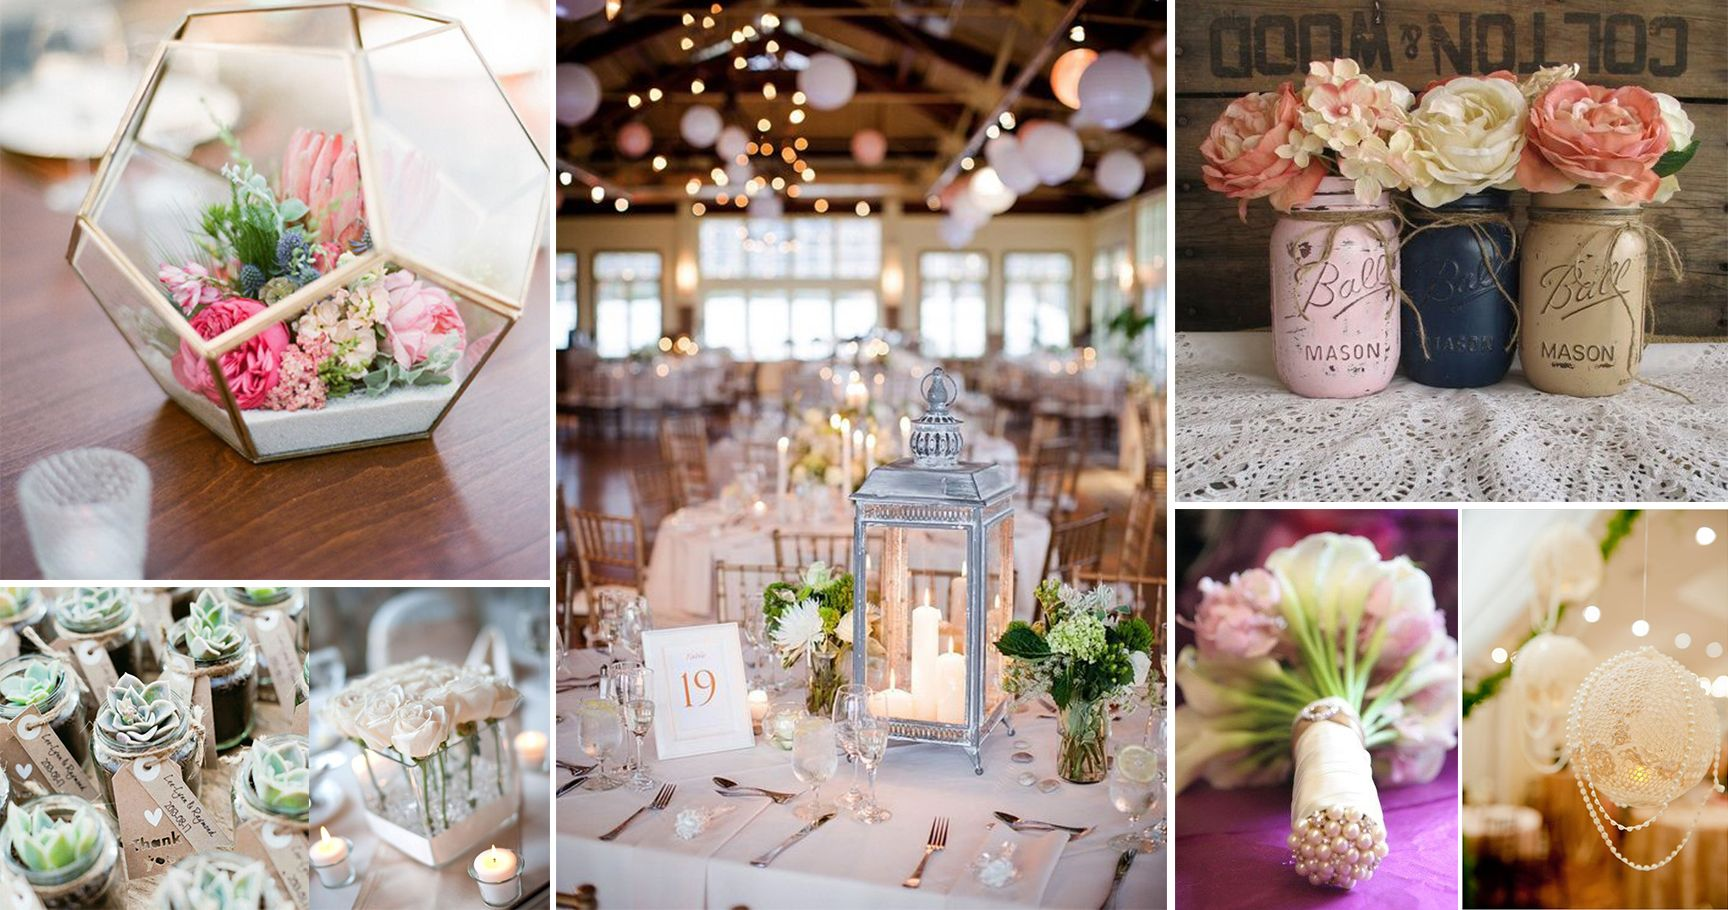 15 Gorgeous DIY Decorations For Your Wedding